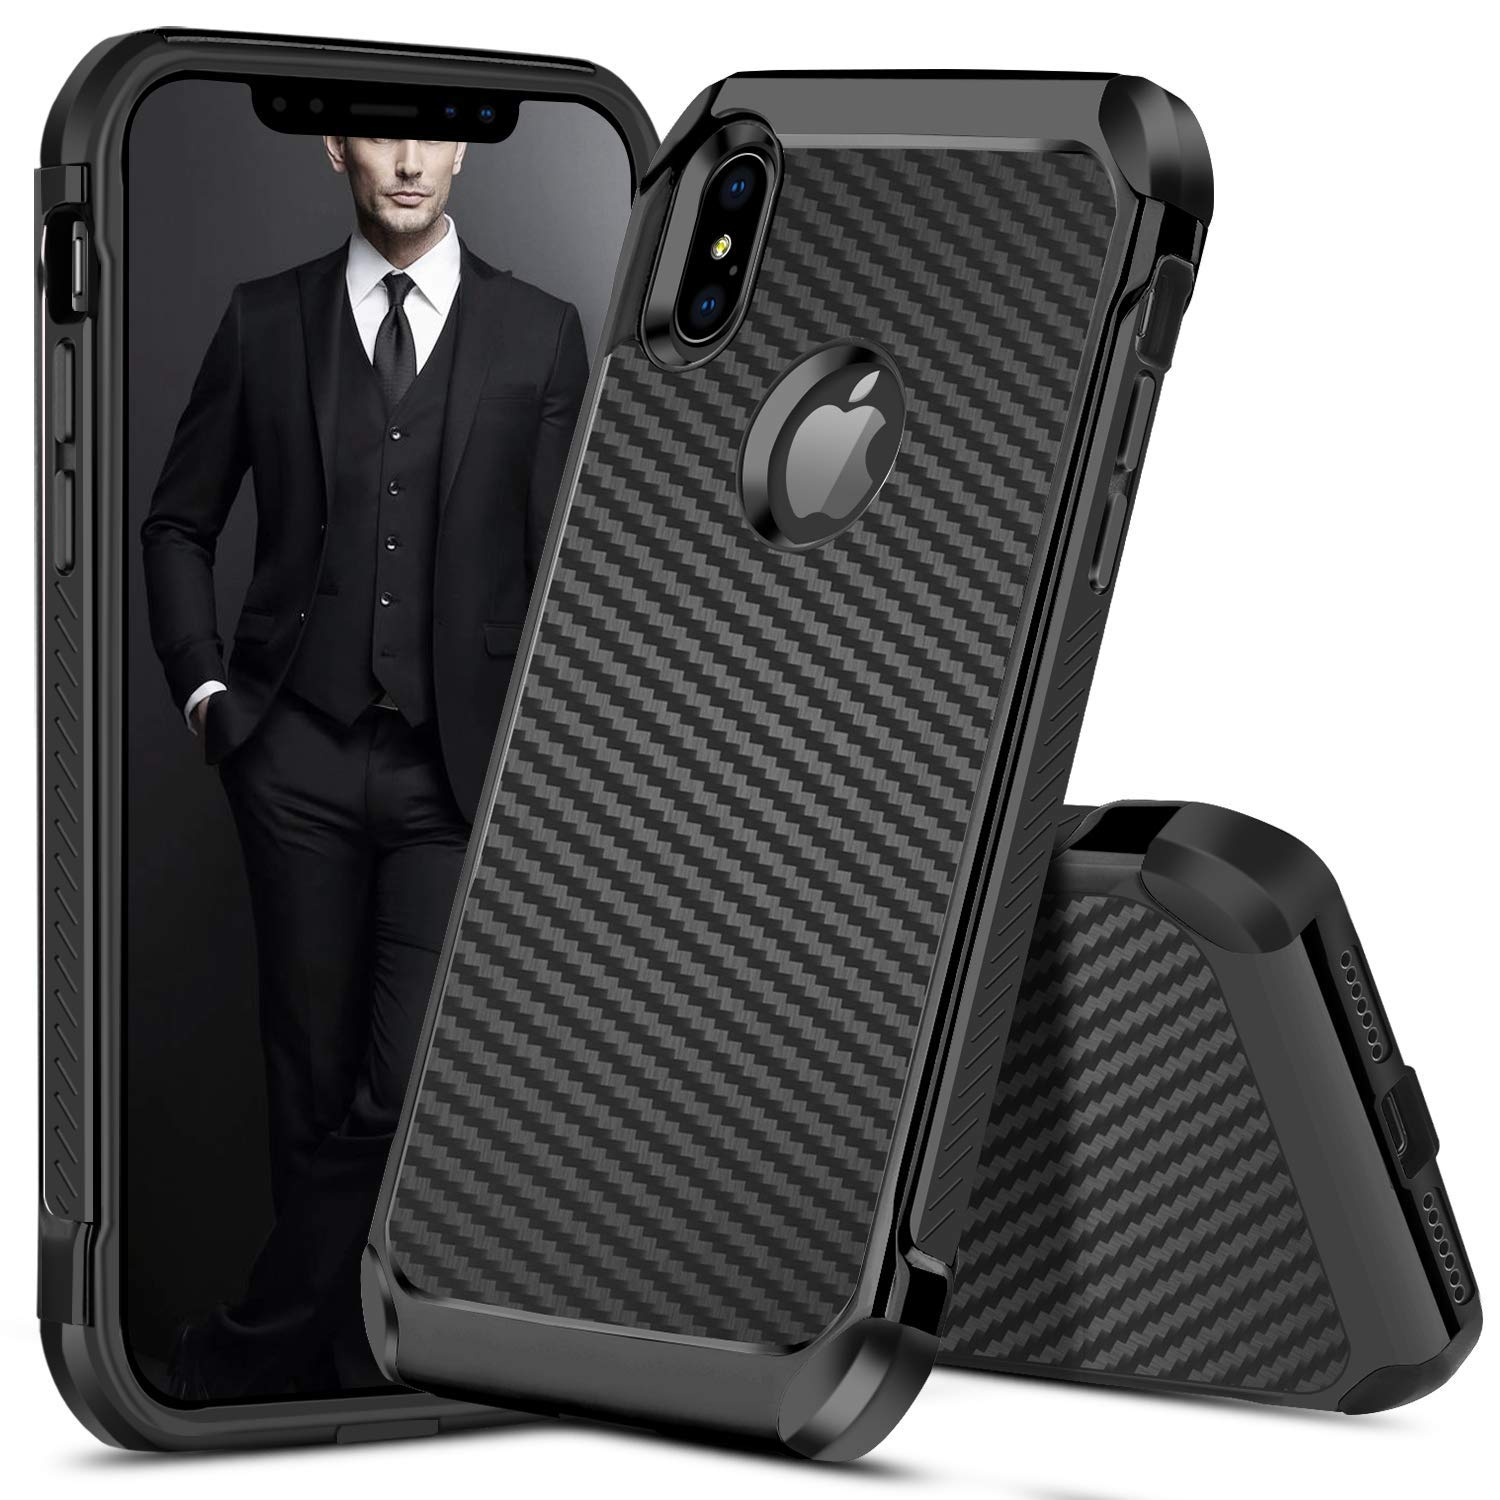 Iphone Xs Max Case Duedue Shockproof 2 In 1 Case Carbon Fiber Texture Design Slim Hybrid Hard Pc Cover Pu Leather Tpu Bumper Full Body Protective